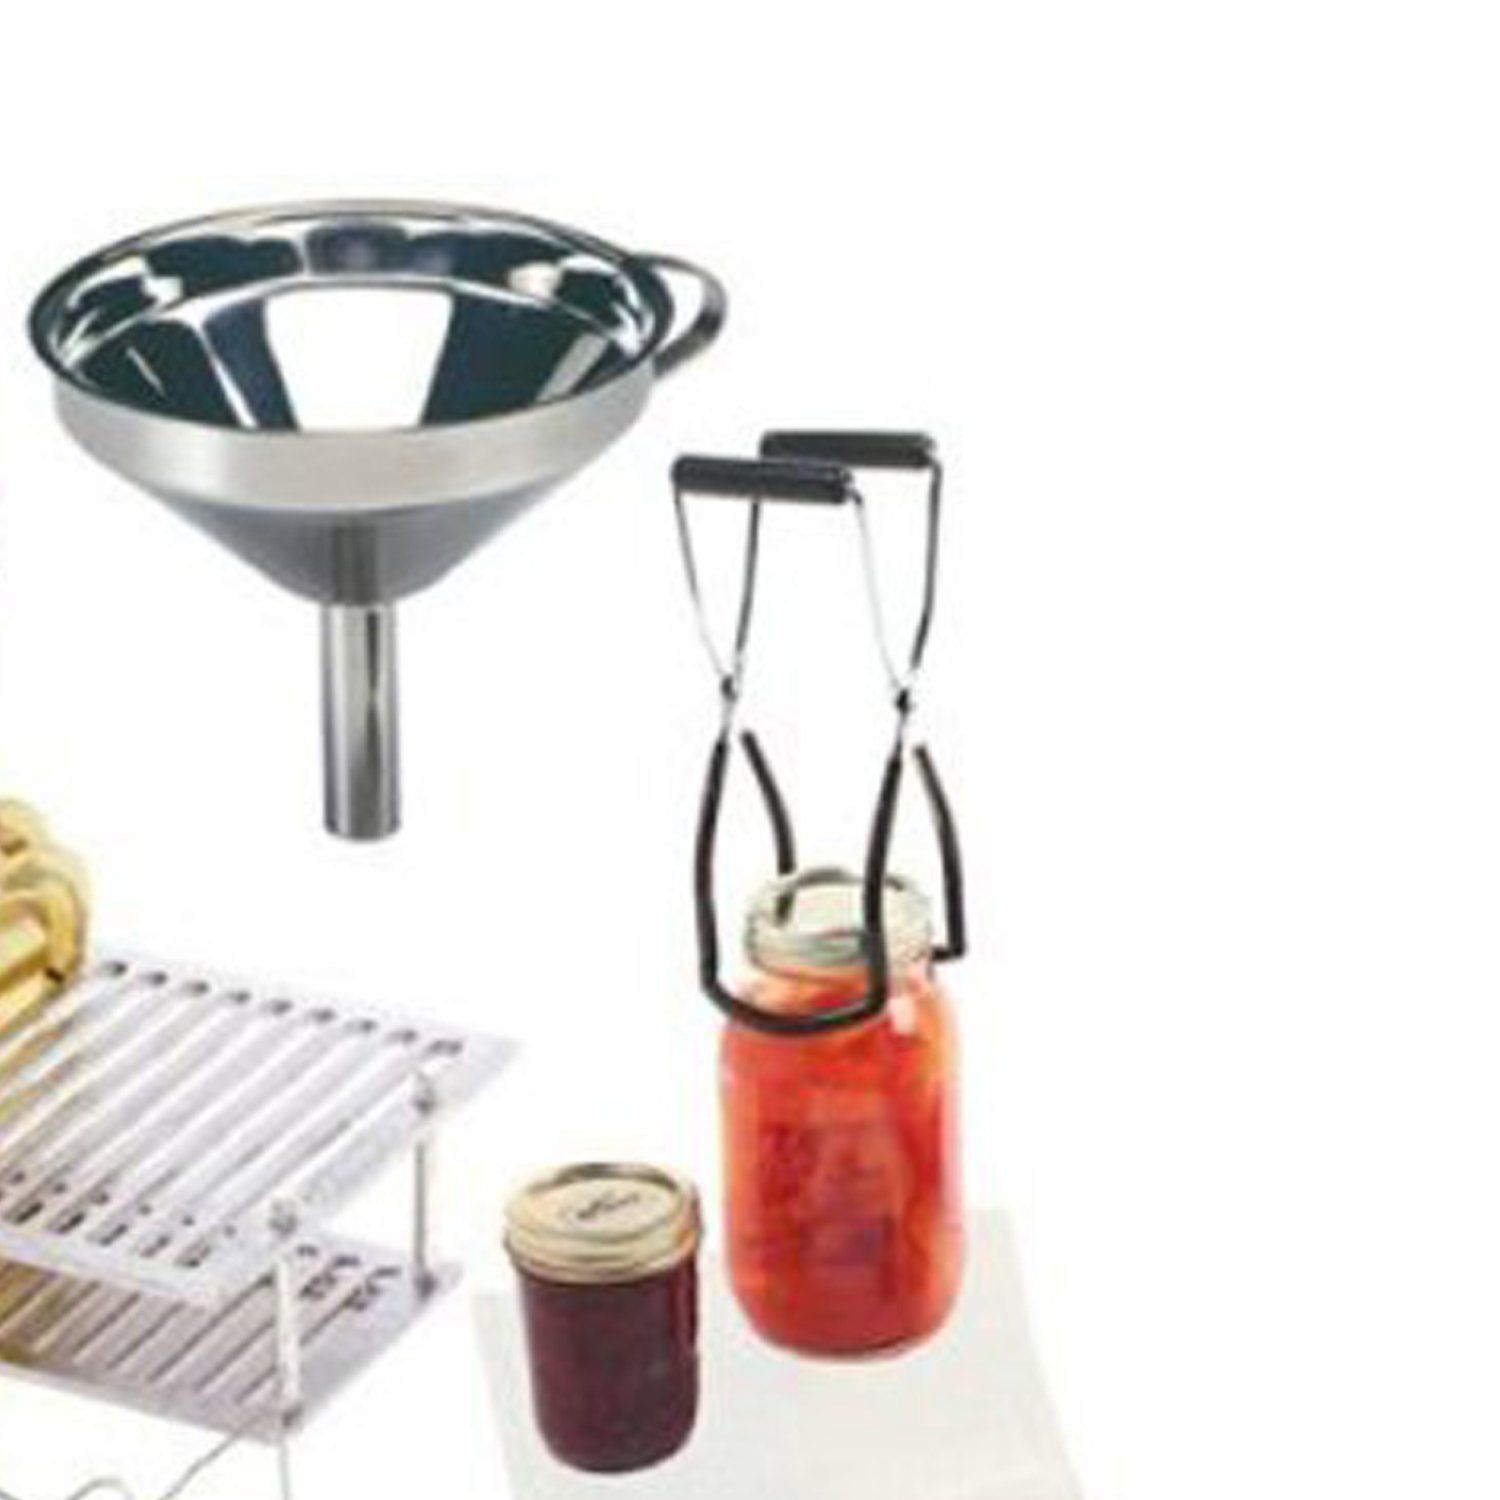 Norpro 2478367600456 7-Piece Home Canning Set by Norpro (Image #3)